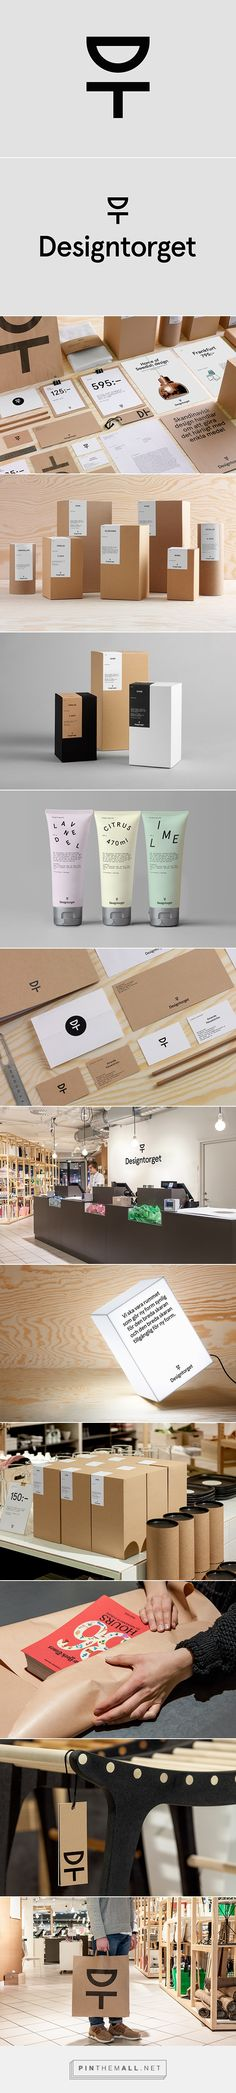 Designtorget on Behance by Kurppa Hosk, Stockholm, Sweden curated by Packaging Diva PD. Coperate Design, Label Design, Logo Design, Package Design, Branding And Packaging, Kraft Packaging, Brand Identity Design, Graphic Design Branding, Packaging Design Inspiration